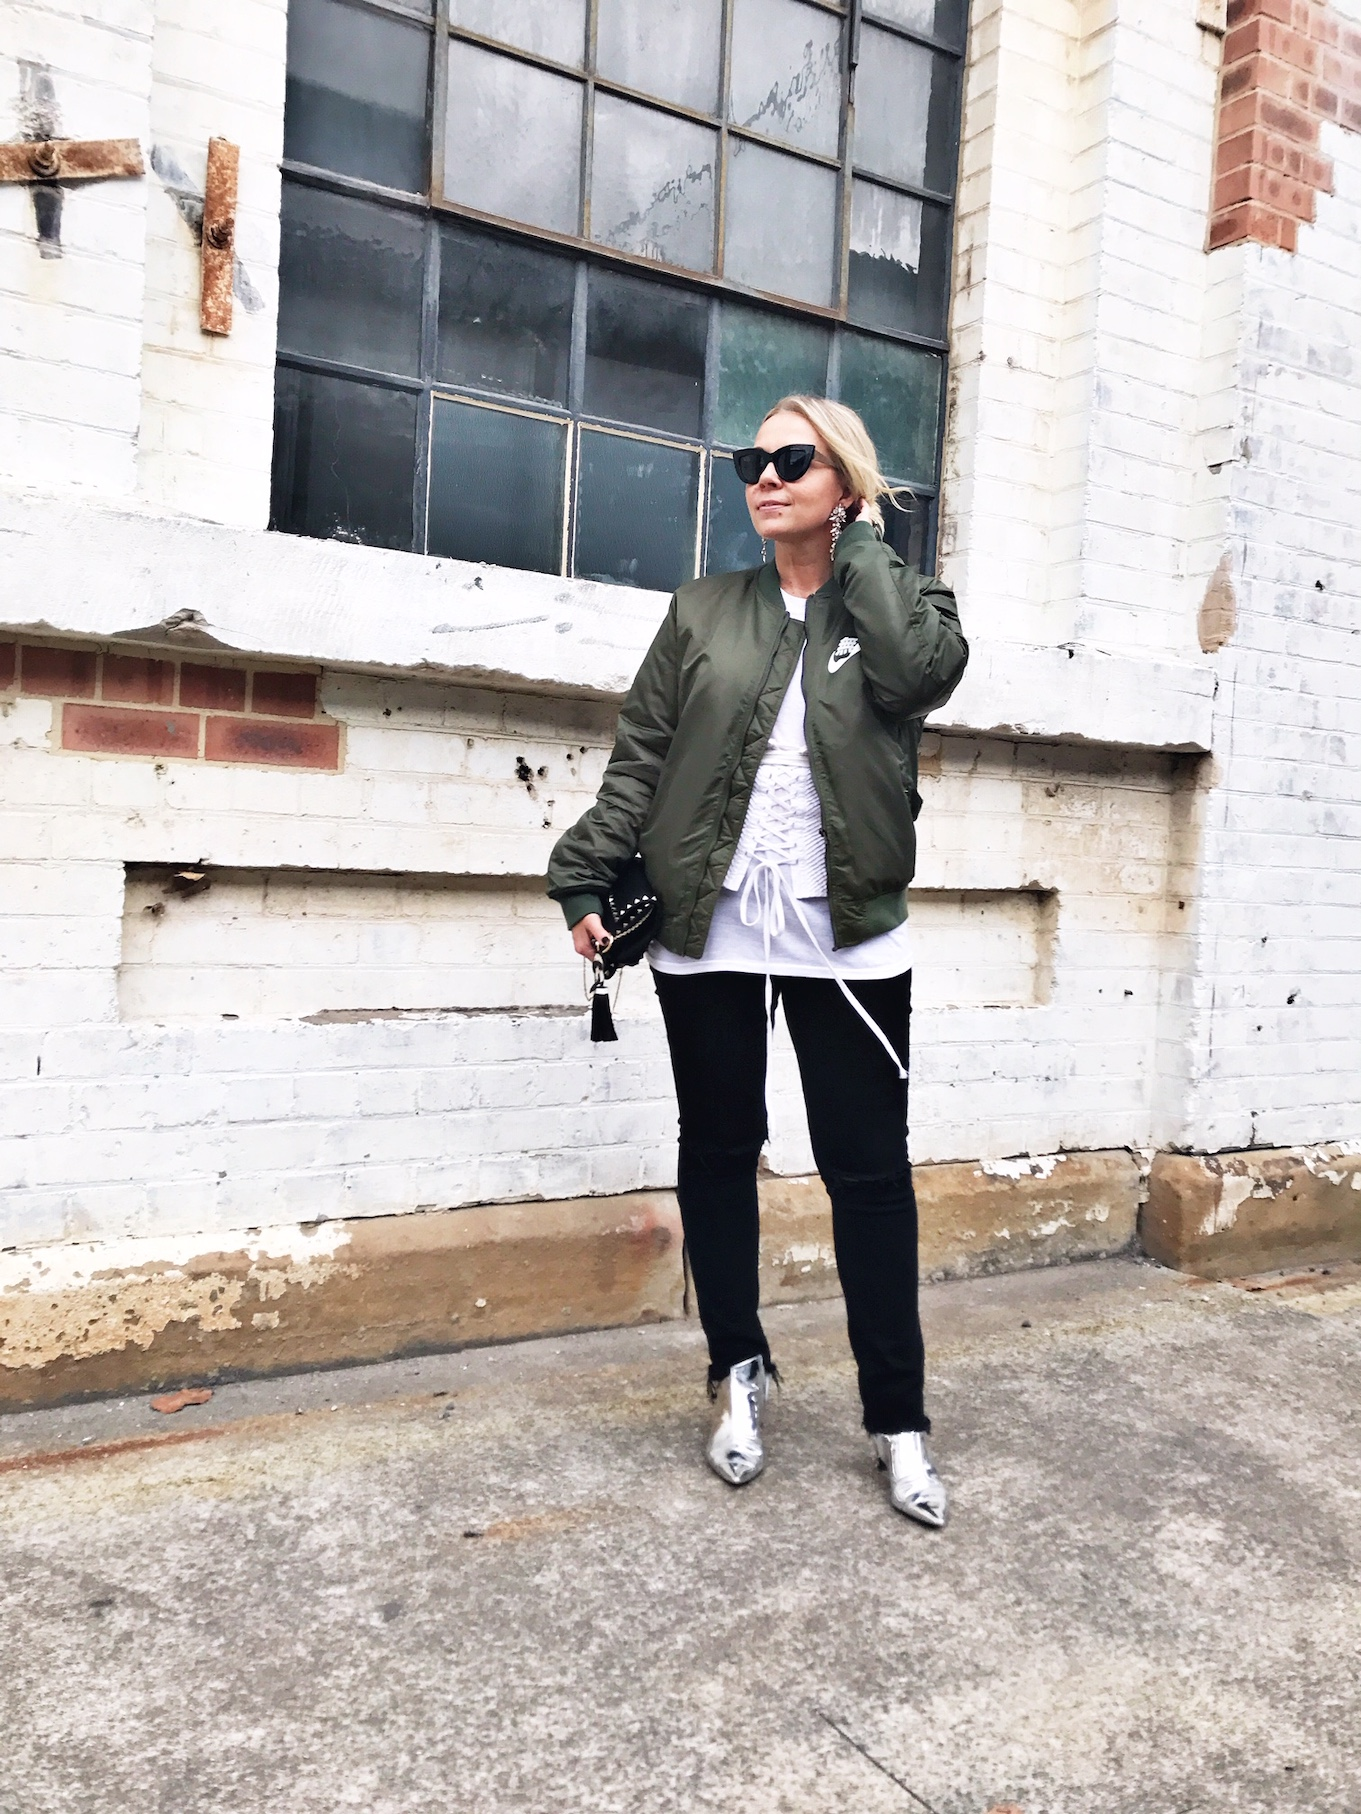 A Week Of Designer-Inspired Salvation Army Finds With Faye De Lanty From Fashion Hound on The Good Trade